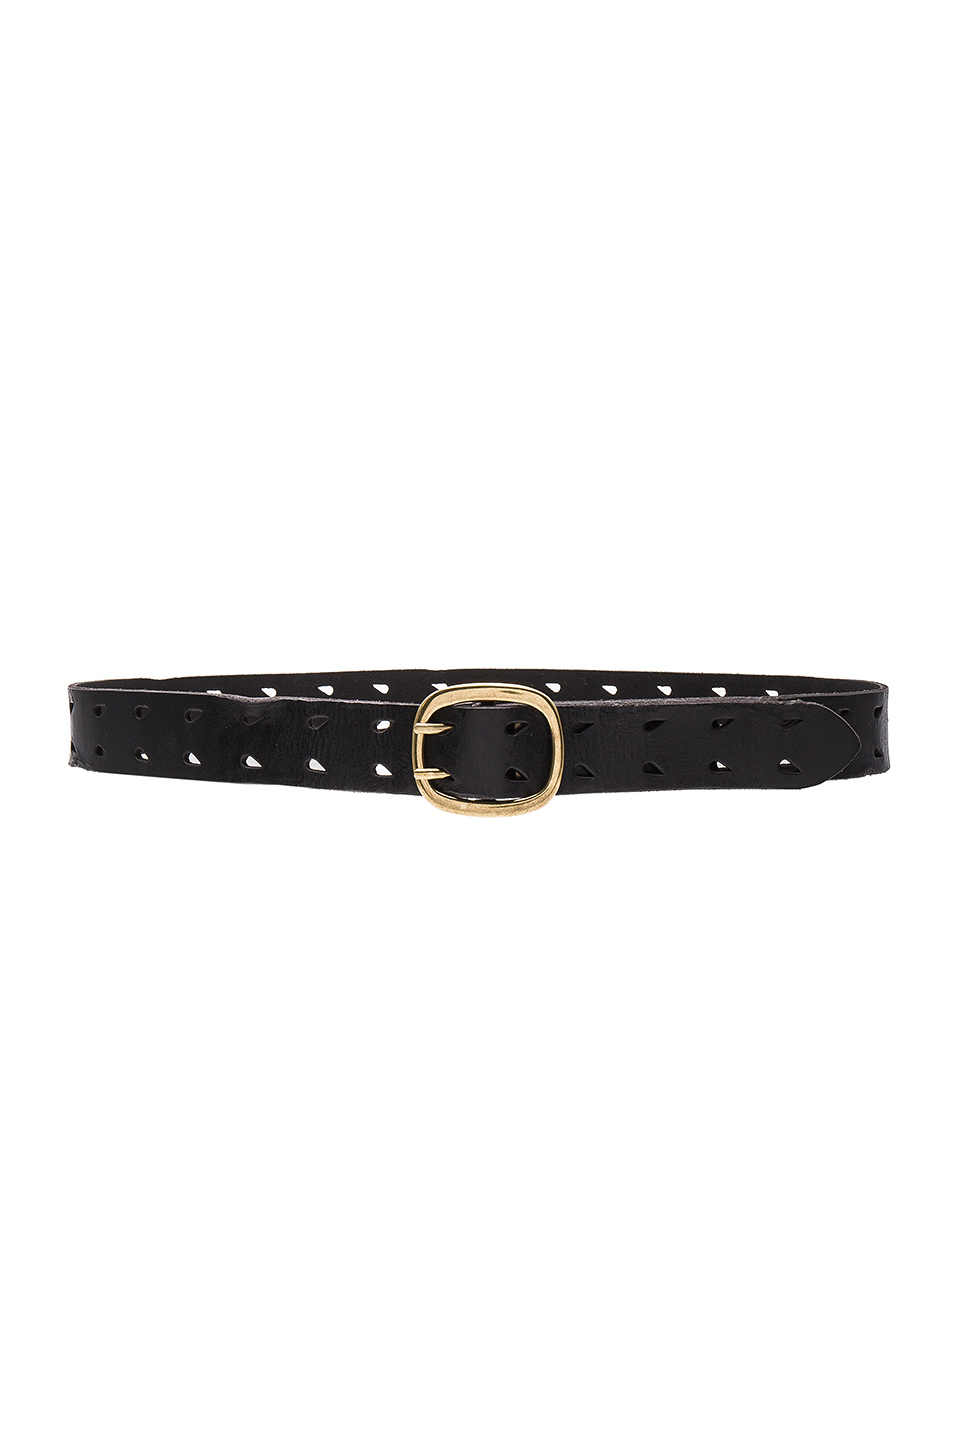 Linea Pelle Double Prong Basic Hip Belt in Black